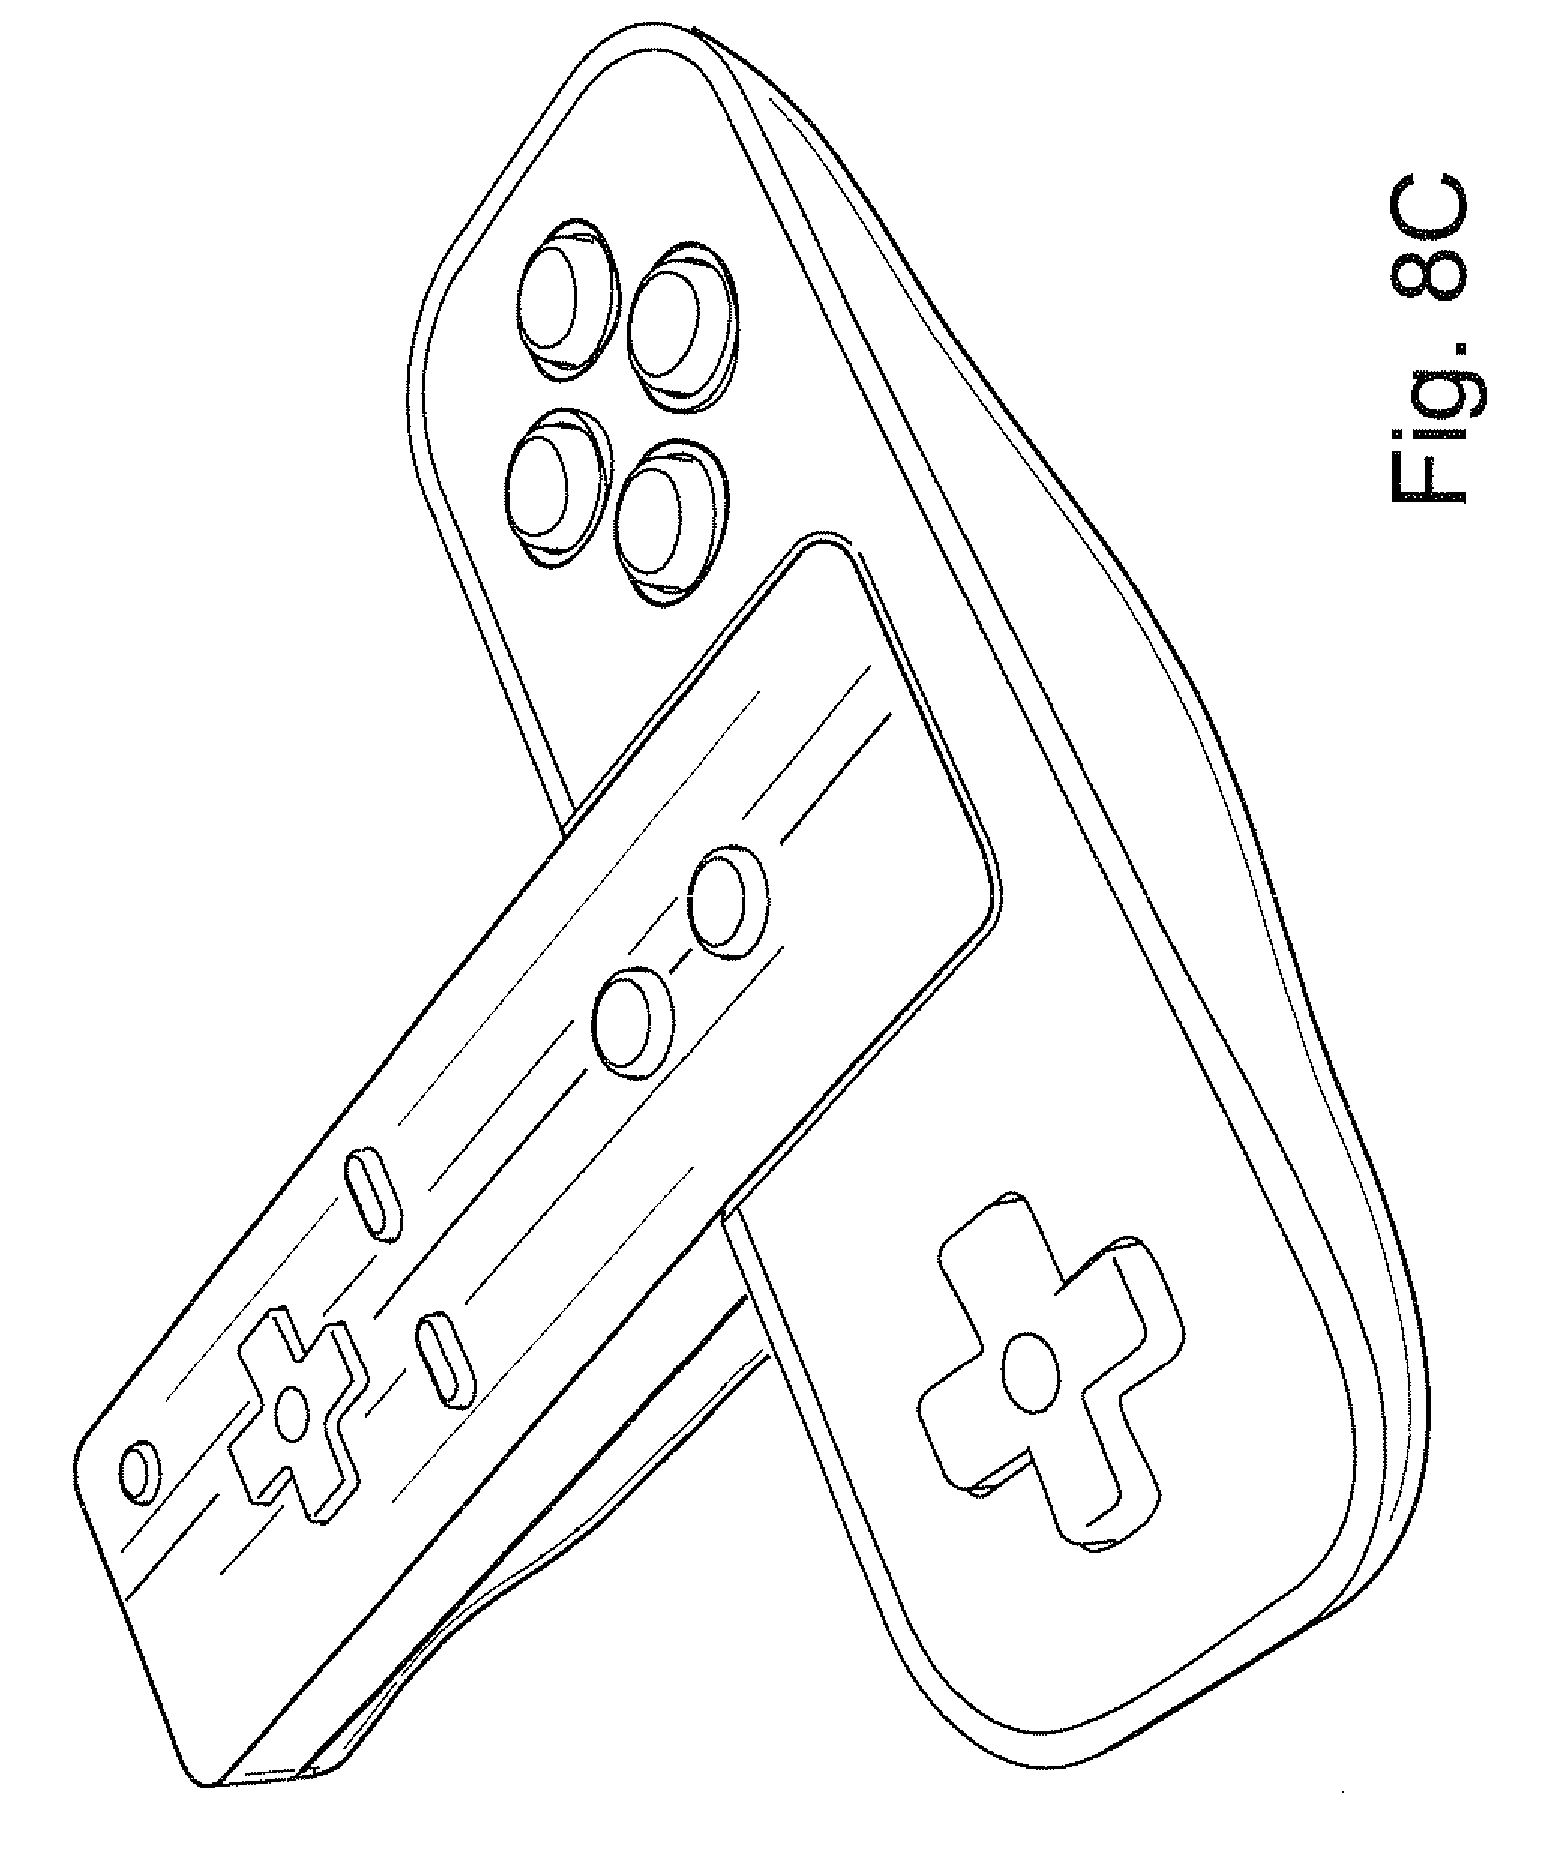 patent us7927216 - video game system with wireless modular handheld controller